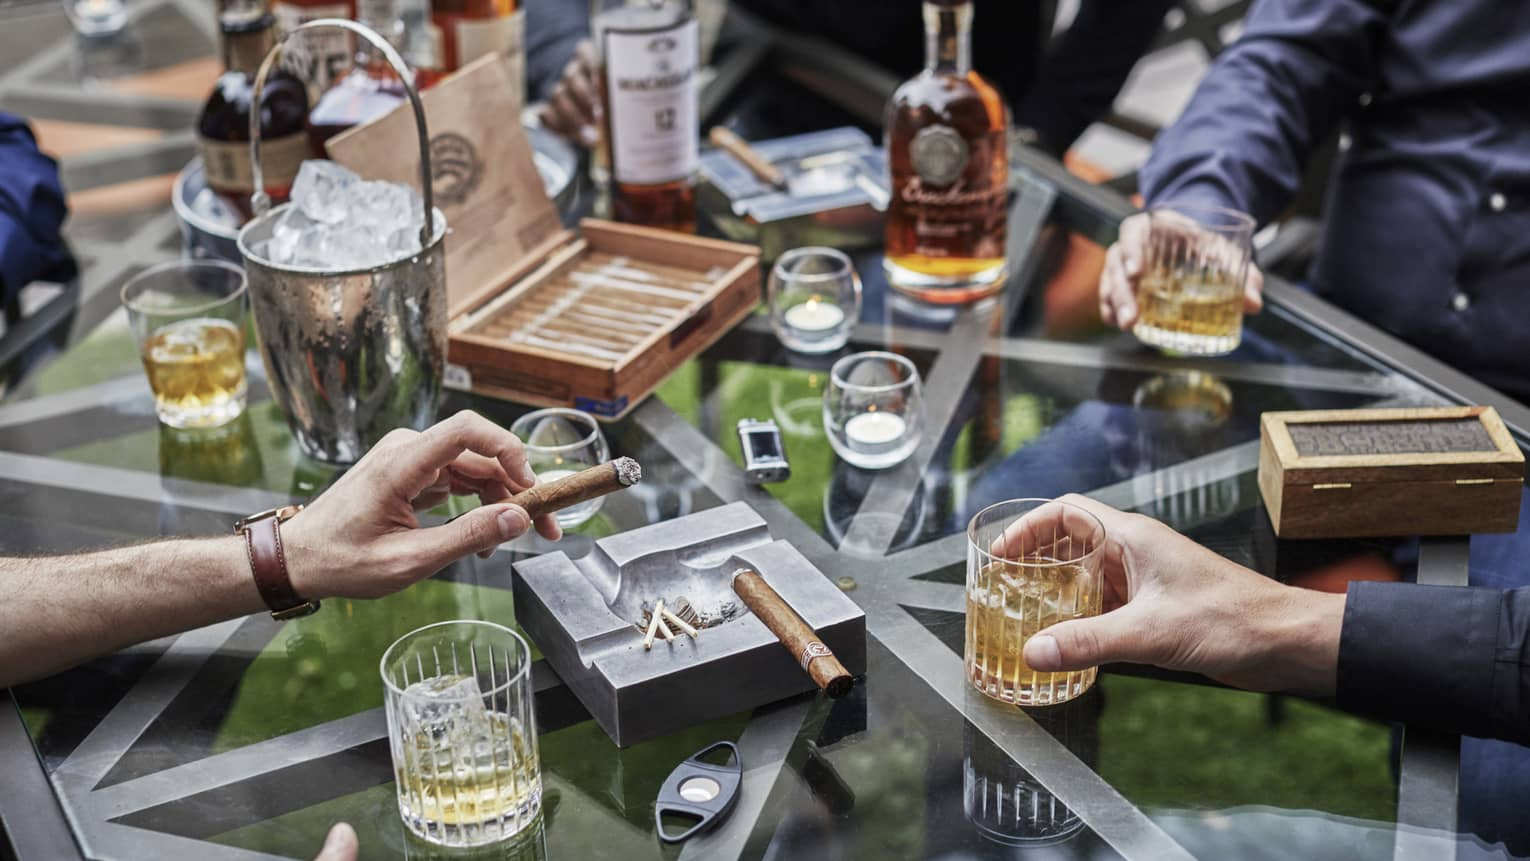 Bachelor party scene with men's hands holding rock glasses with liquor and thick cigars at glass table